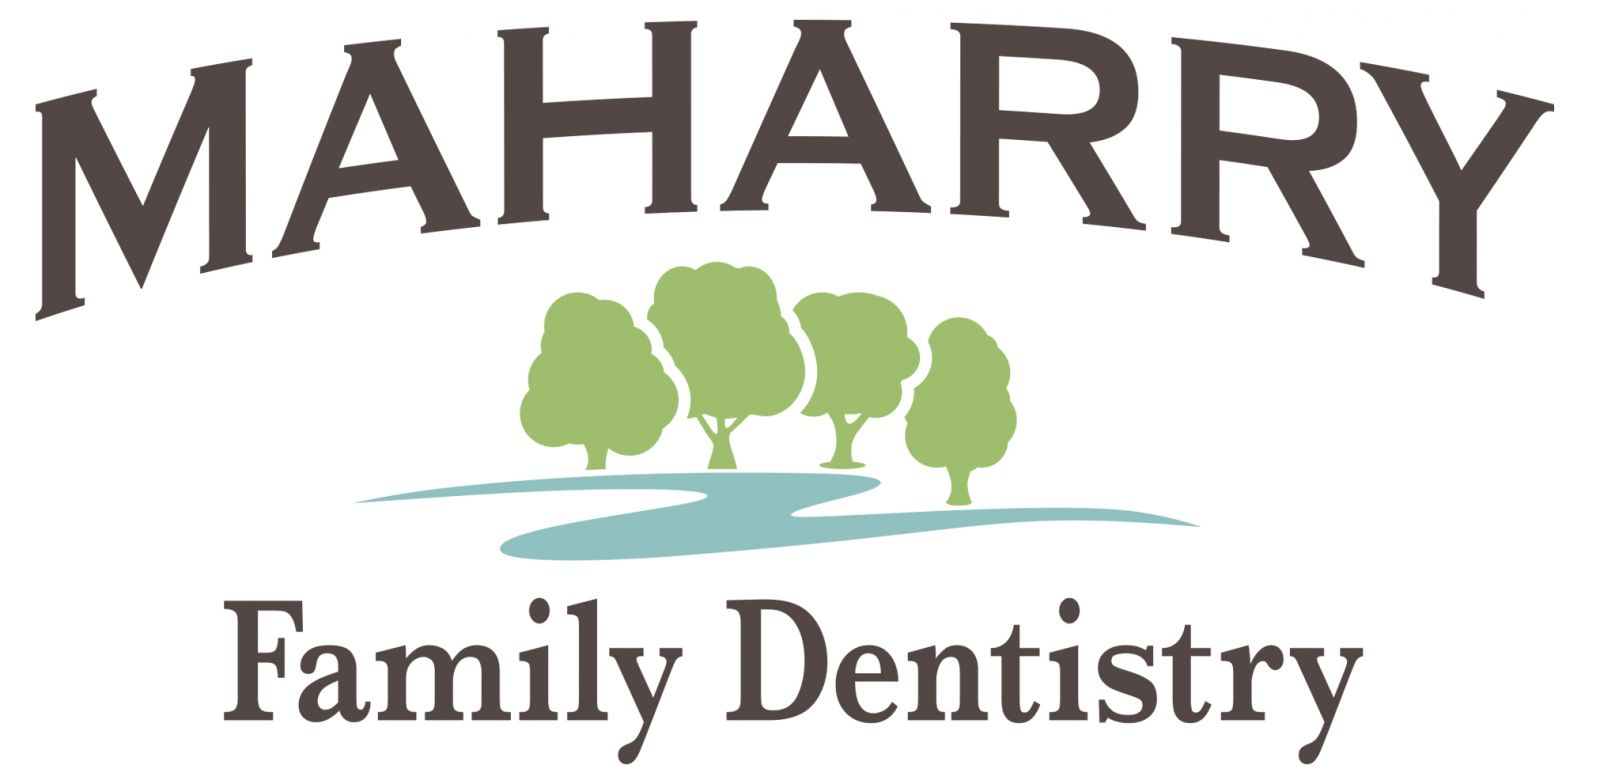 Maharry Family Dentistry